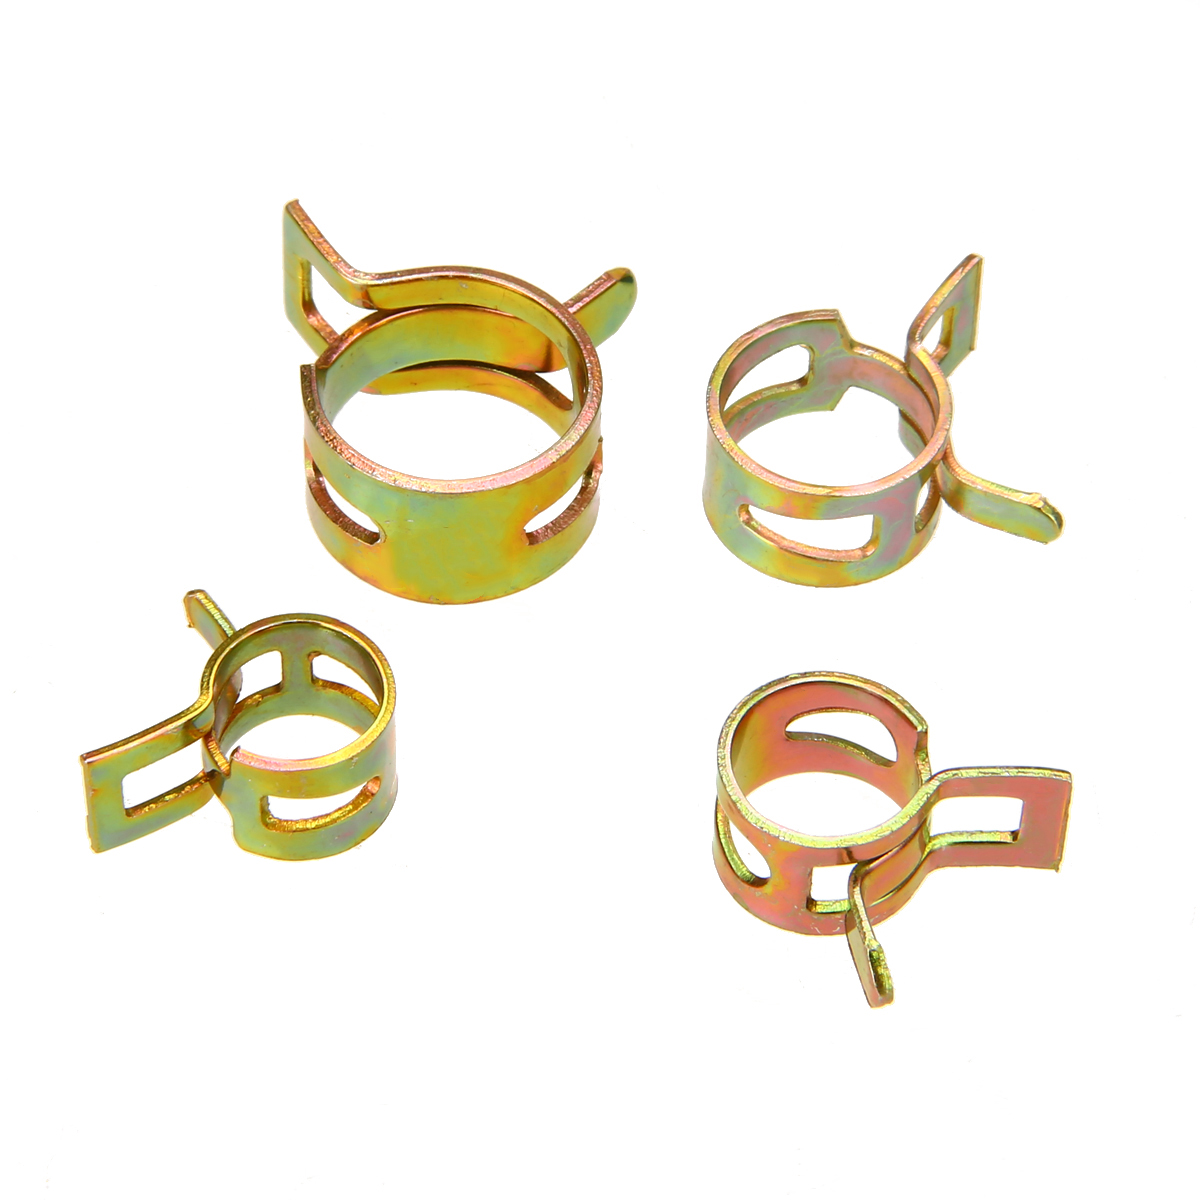 60Pcs/Set 6/9/10/12/14/15MM Steel Spring Clip Fuel Oil Water Hose Pipe Clamp Fastener for Air Hose Tube Silicone Vacuum Hose воздухозаборник silicone vacuum hose 2